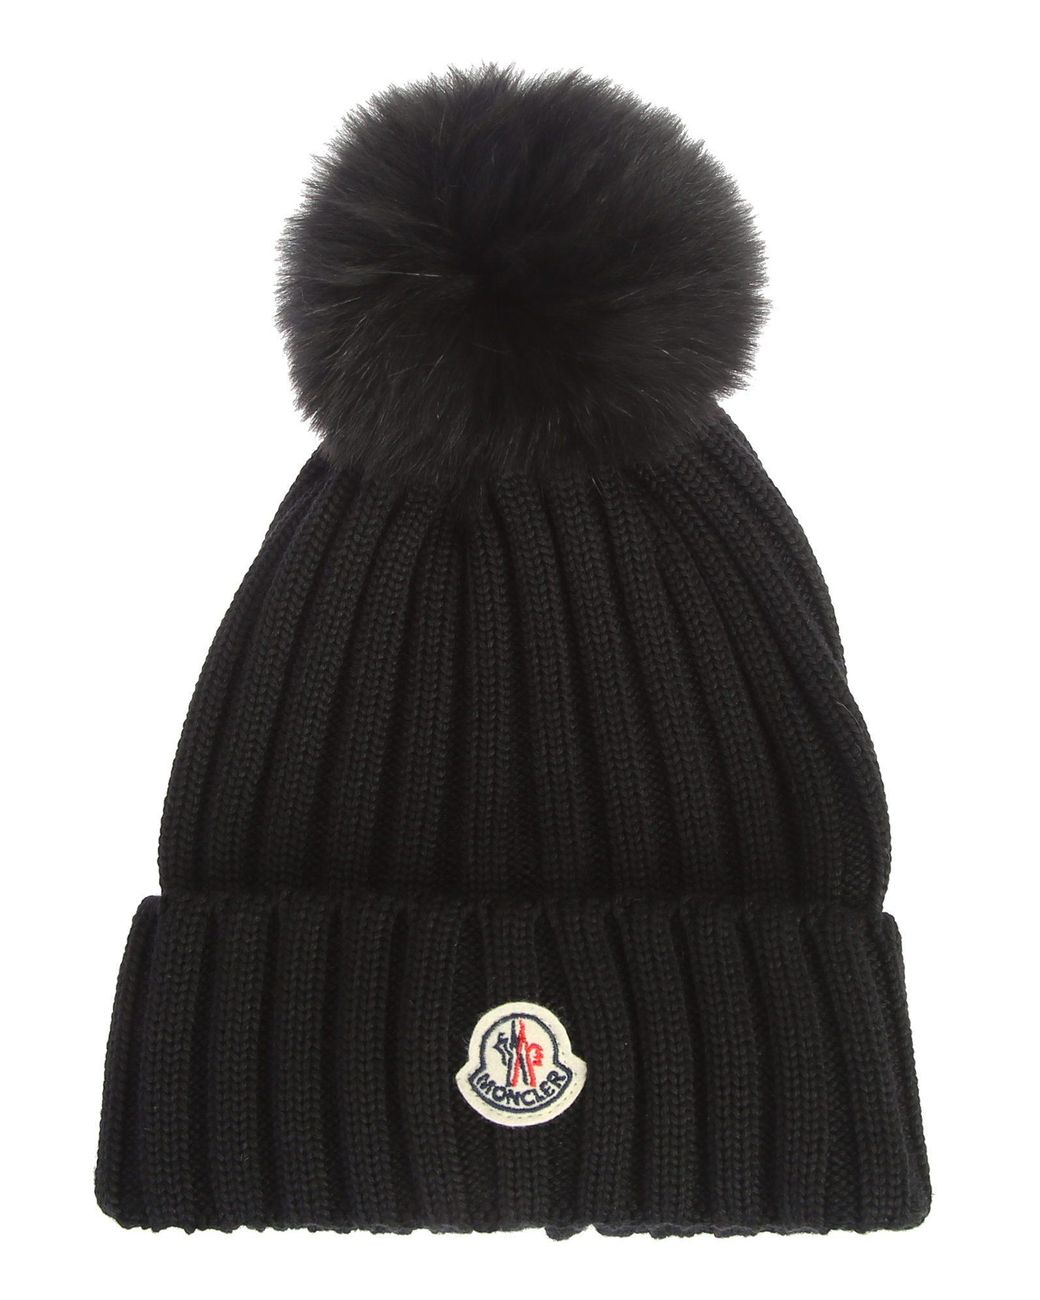 moncler-wool-hat-with-fox-fur-pom-pom